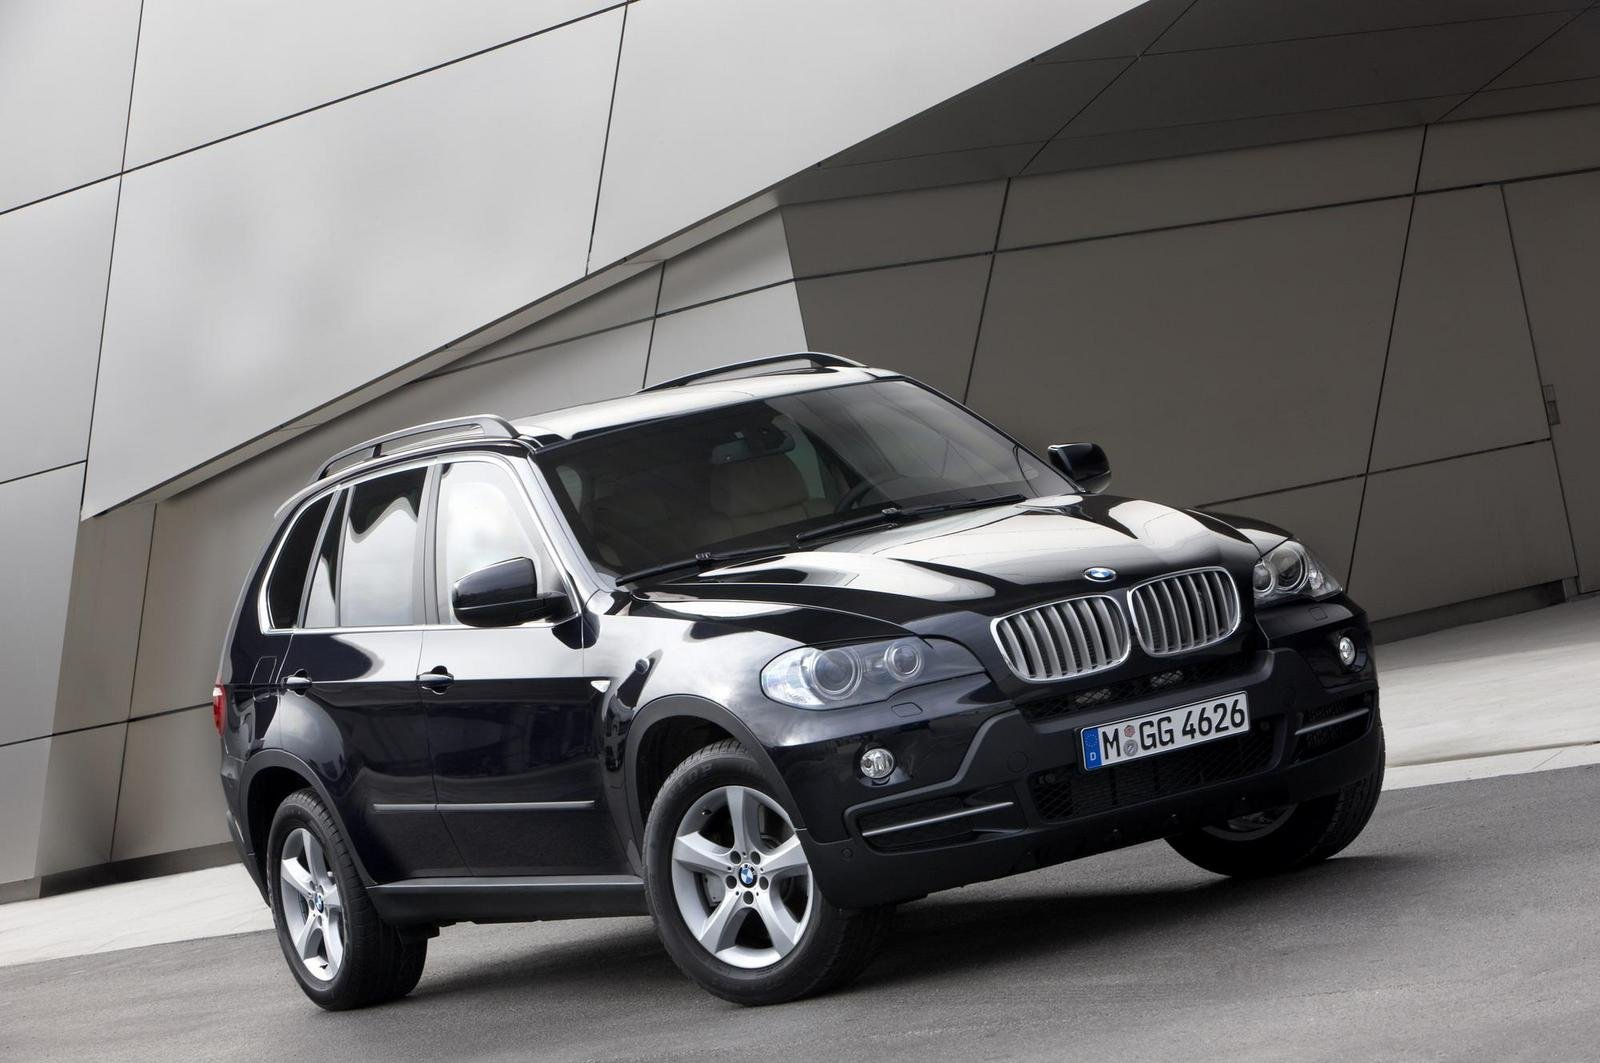 2009 bmw x5 security plus picture 296116 car review top speed. Black Bedroom Furniture Sets. Home Design Ideas